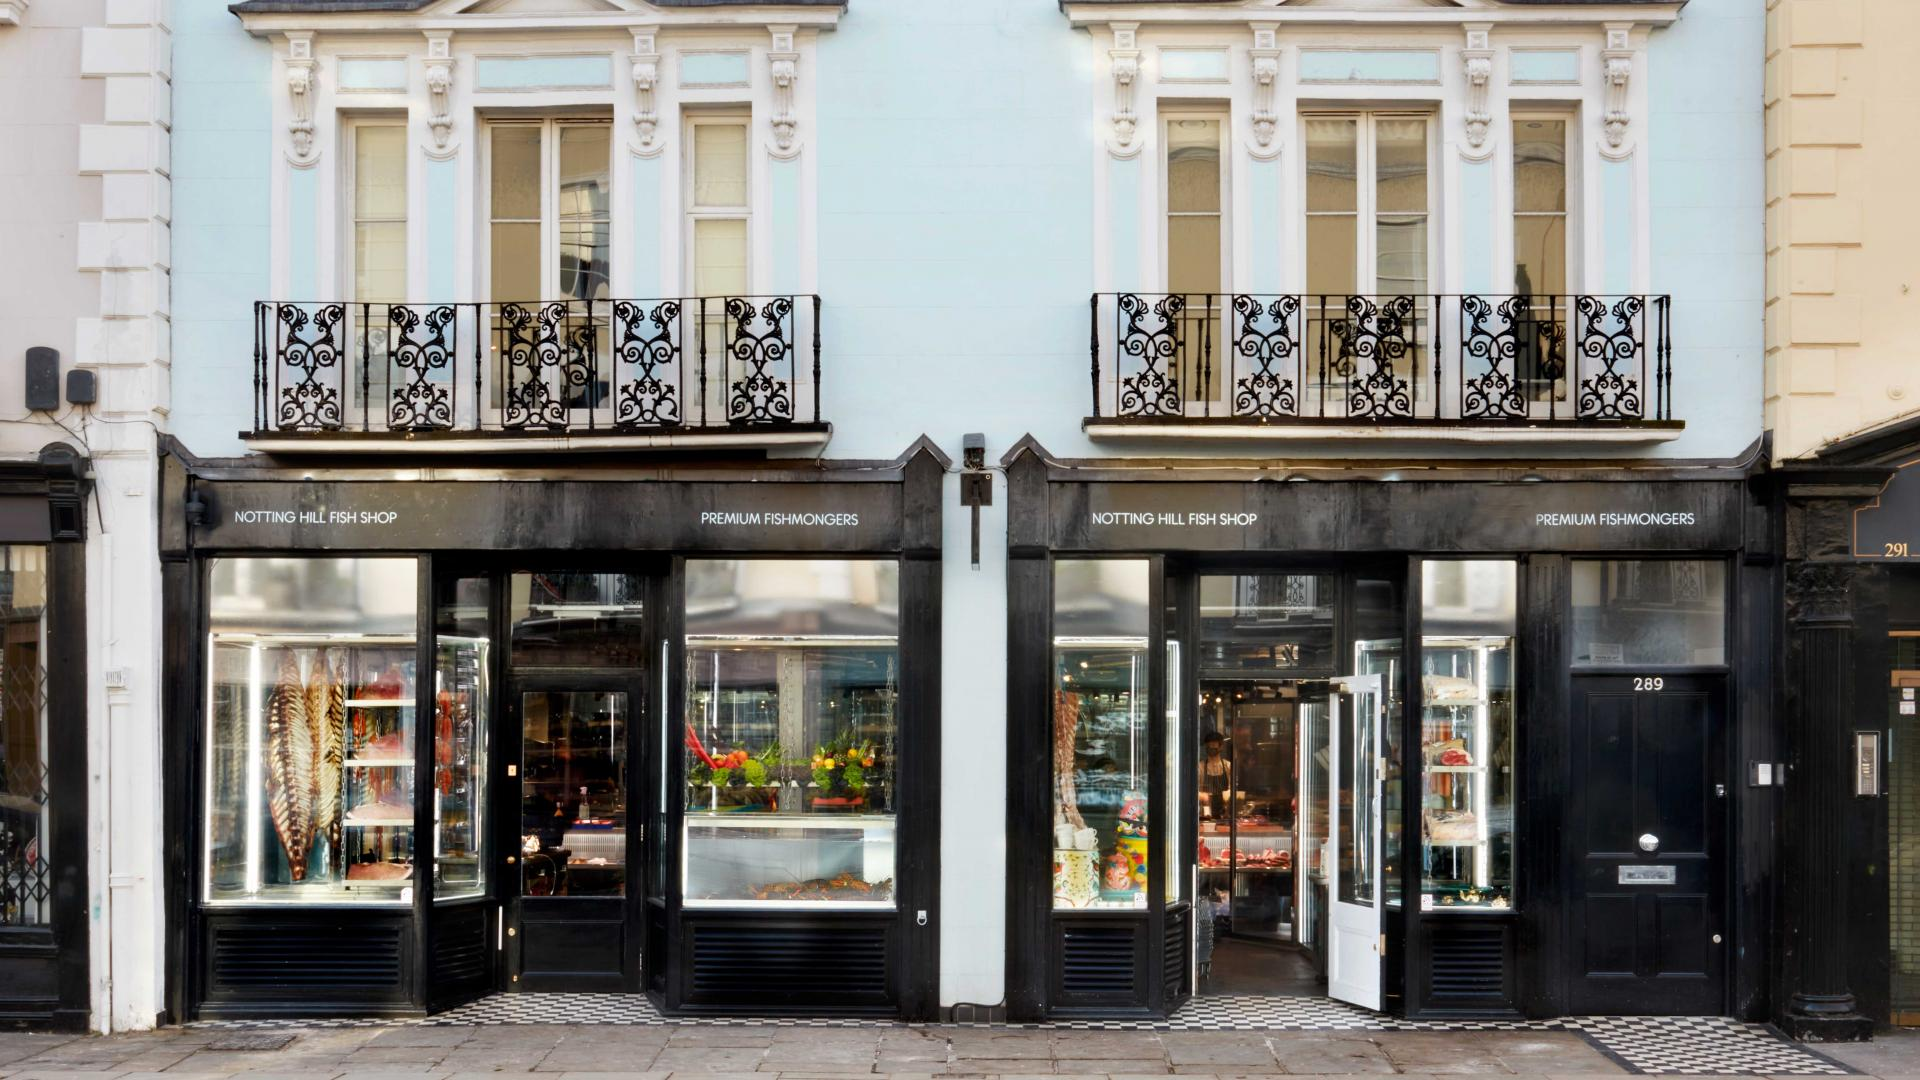 Best butchers London: the exterior Notting Hill Fish + Meat